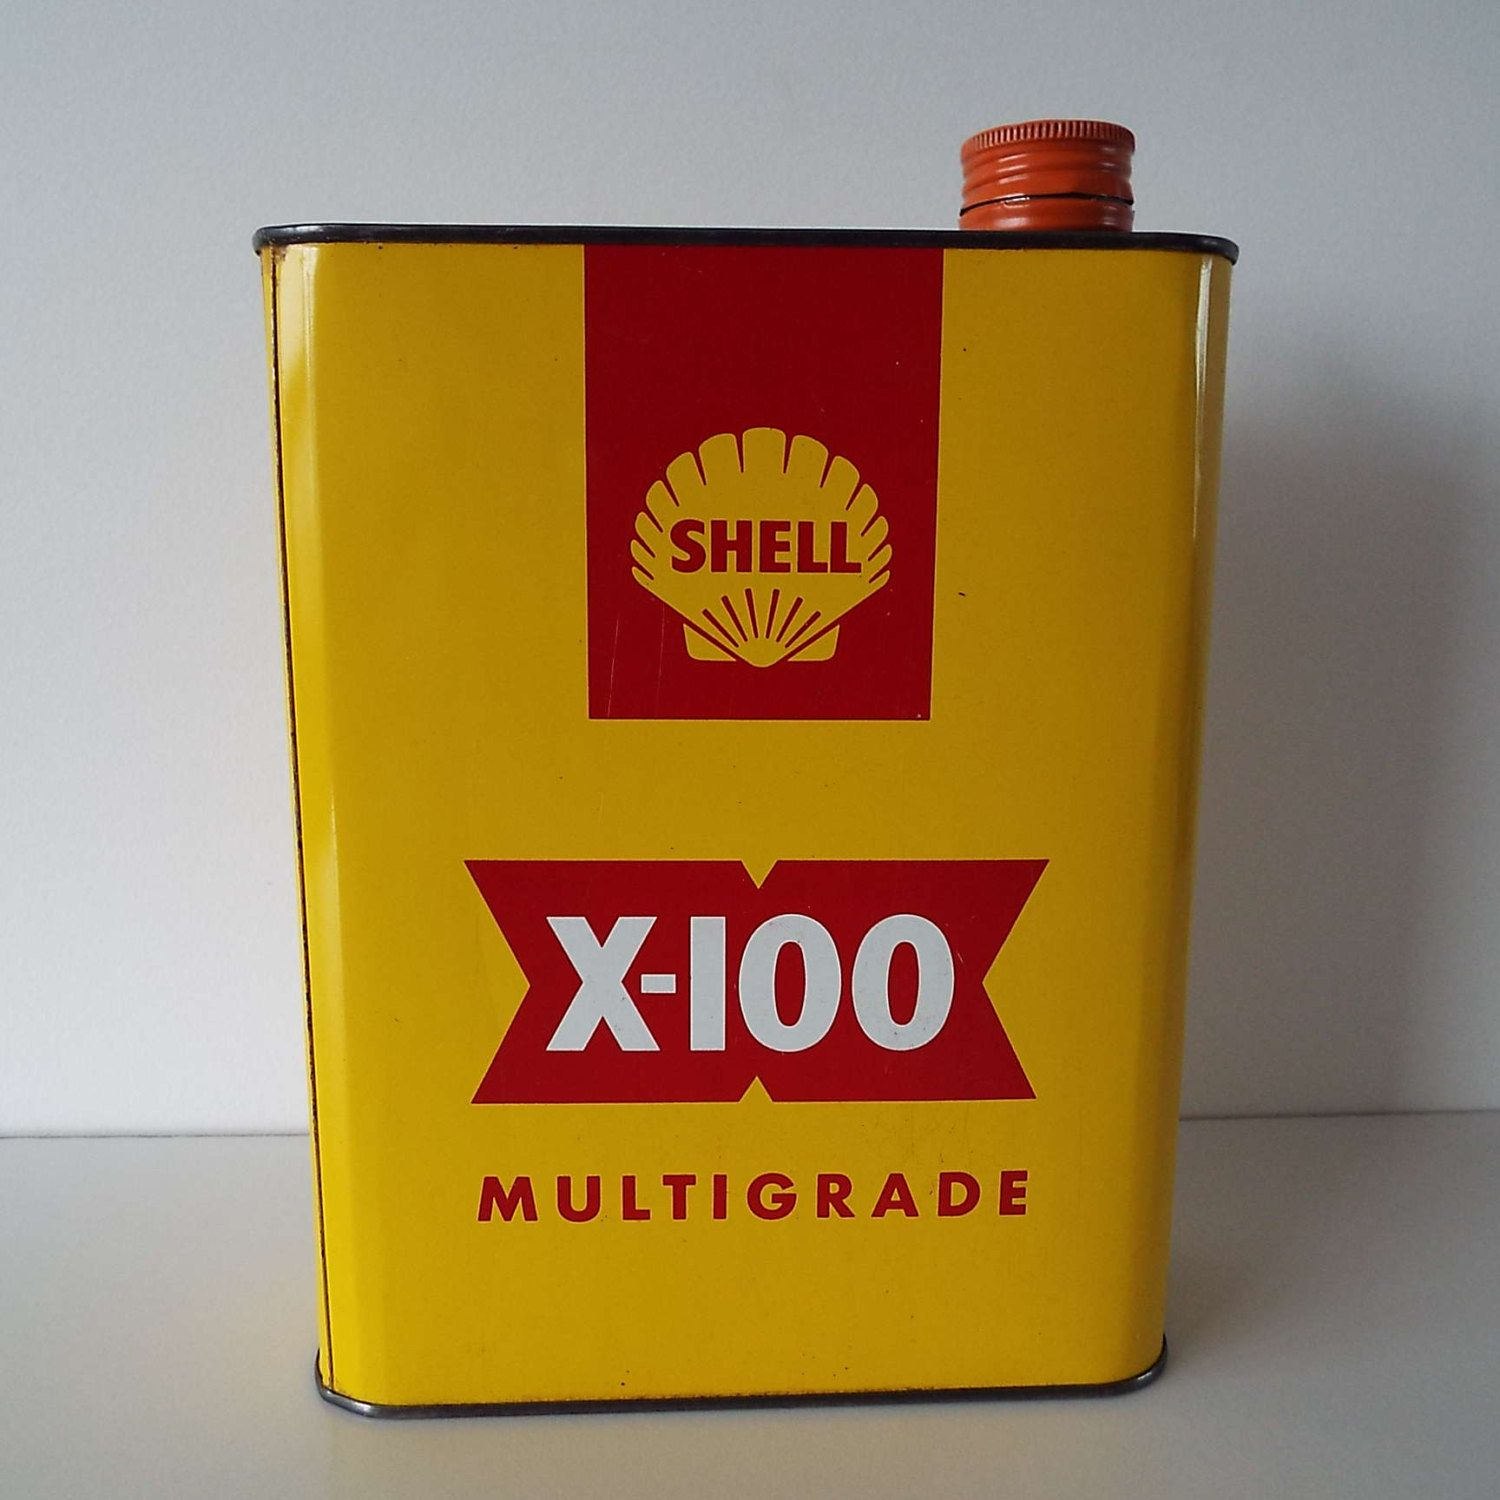 Rare Vintage 1960's Shell X-100 Motor Oil Can Vintage Oil